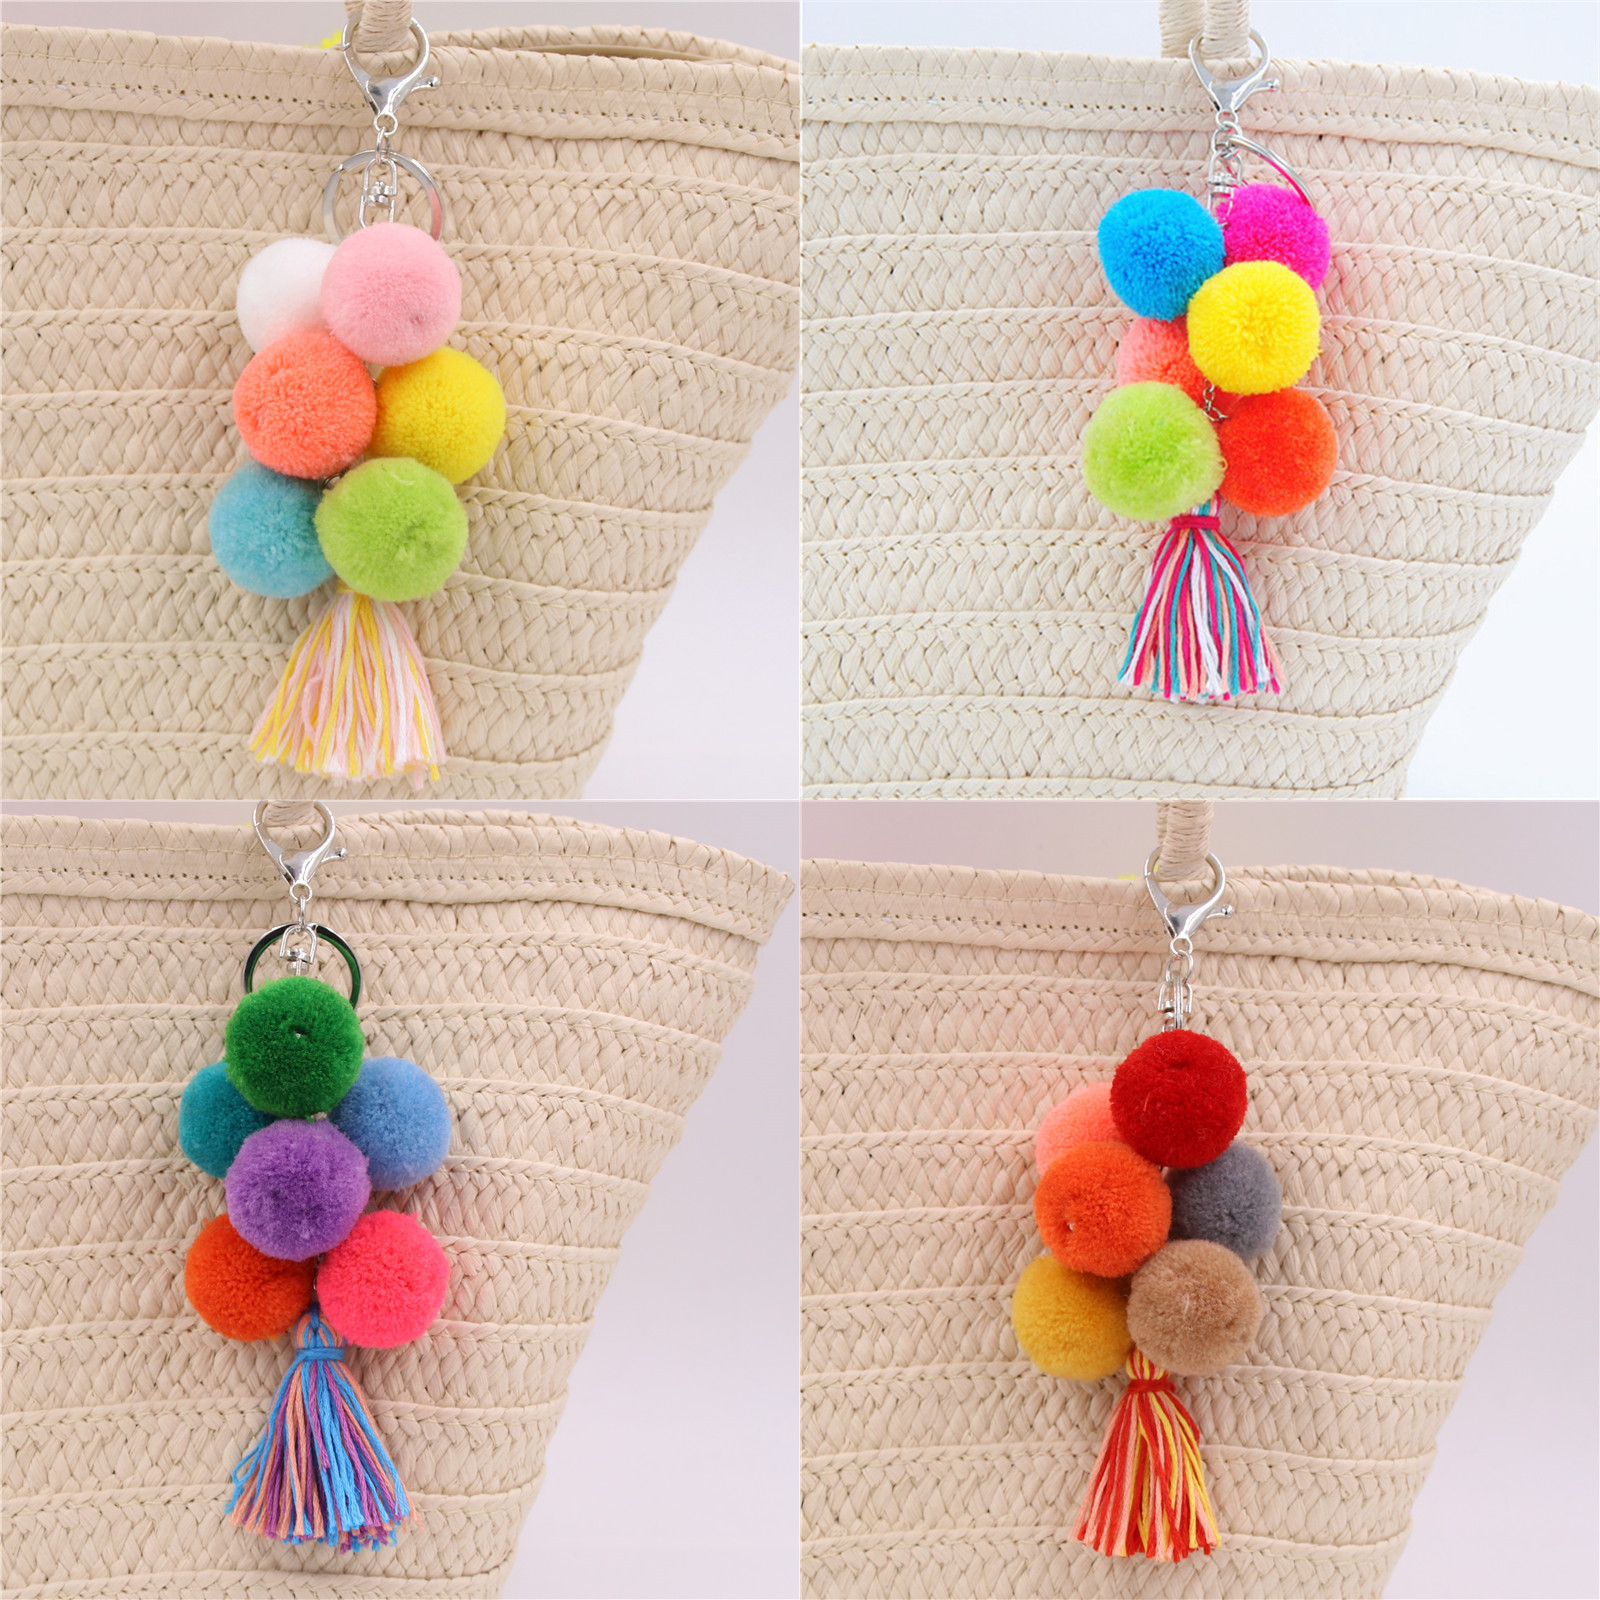 1pc Colorful Boho <font><b>Pom</b></font> <font><b>Pom</b></font> <font><b>Keyring</b></font> Bag Accessories Tassel Bag Car Rainbow Charm Keychains Gift image